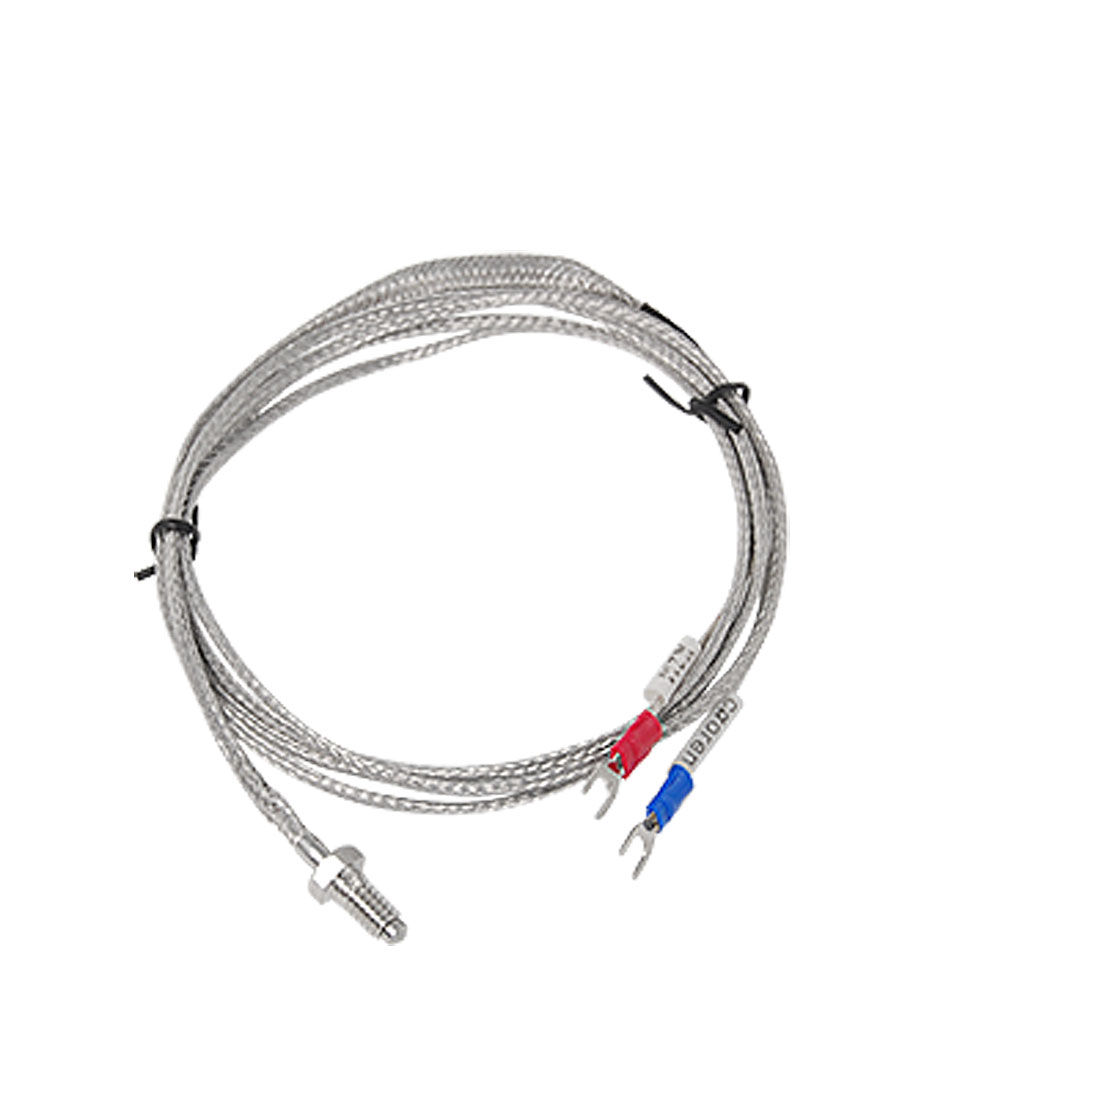 2M Wire Measuring Range 0-400 Celsius Degree Thermocouple Type K